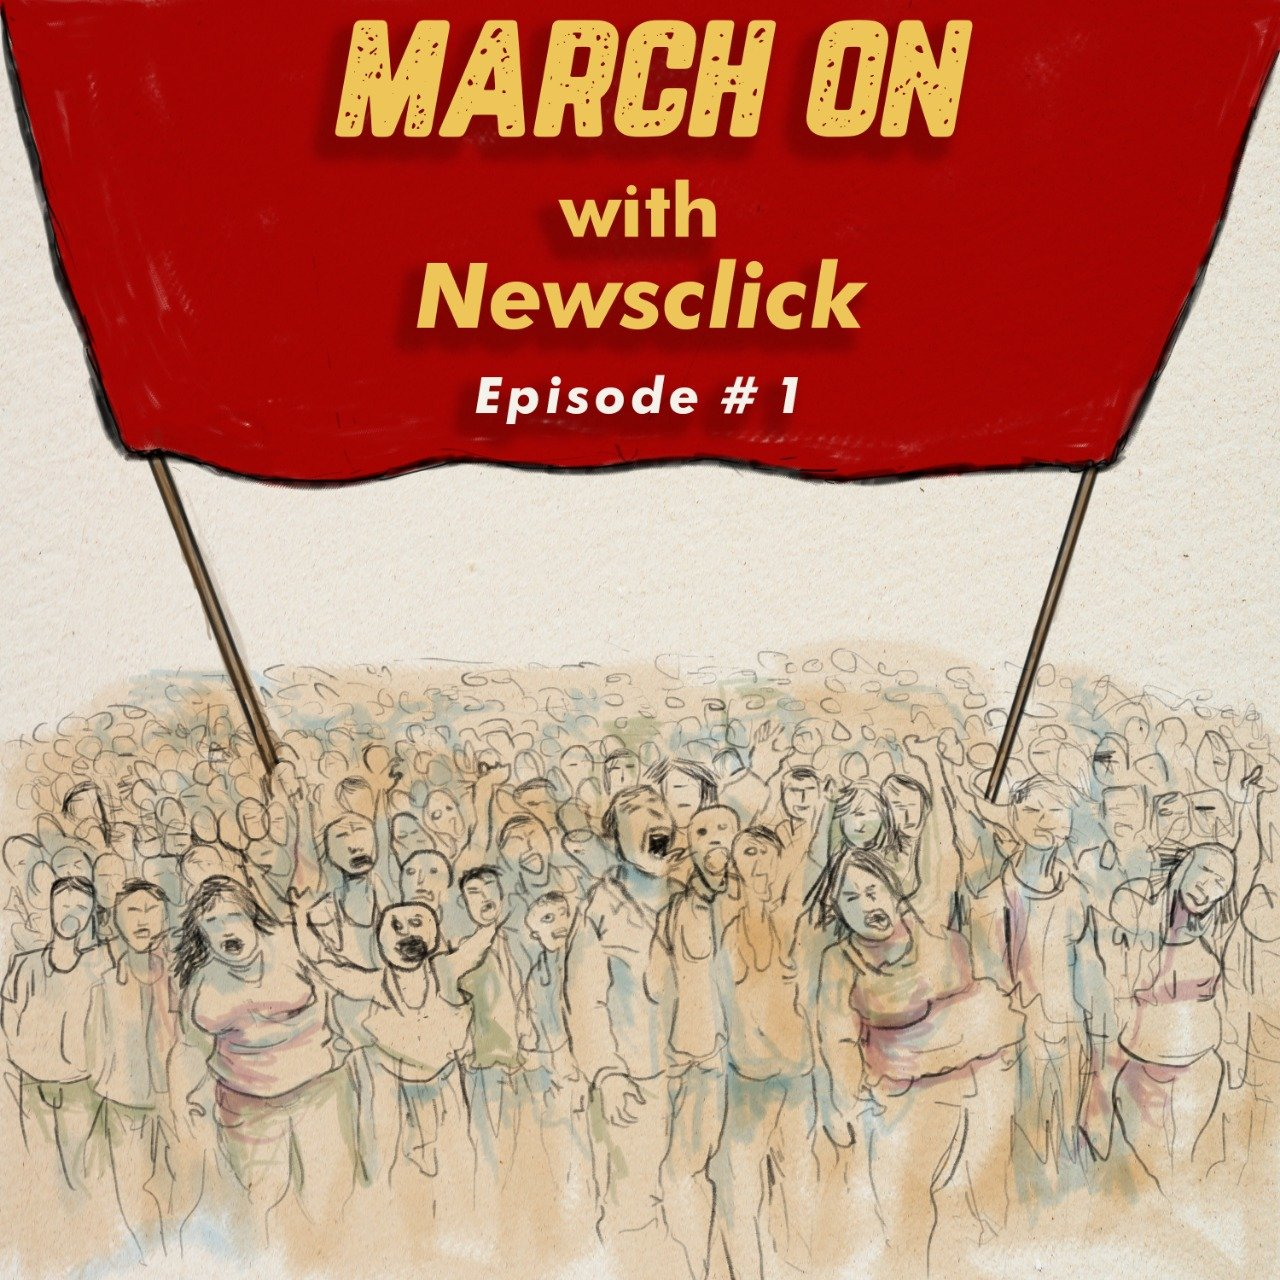 March on Episode #1